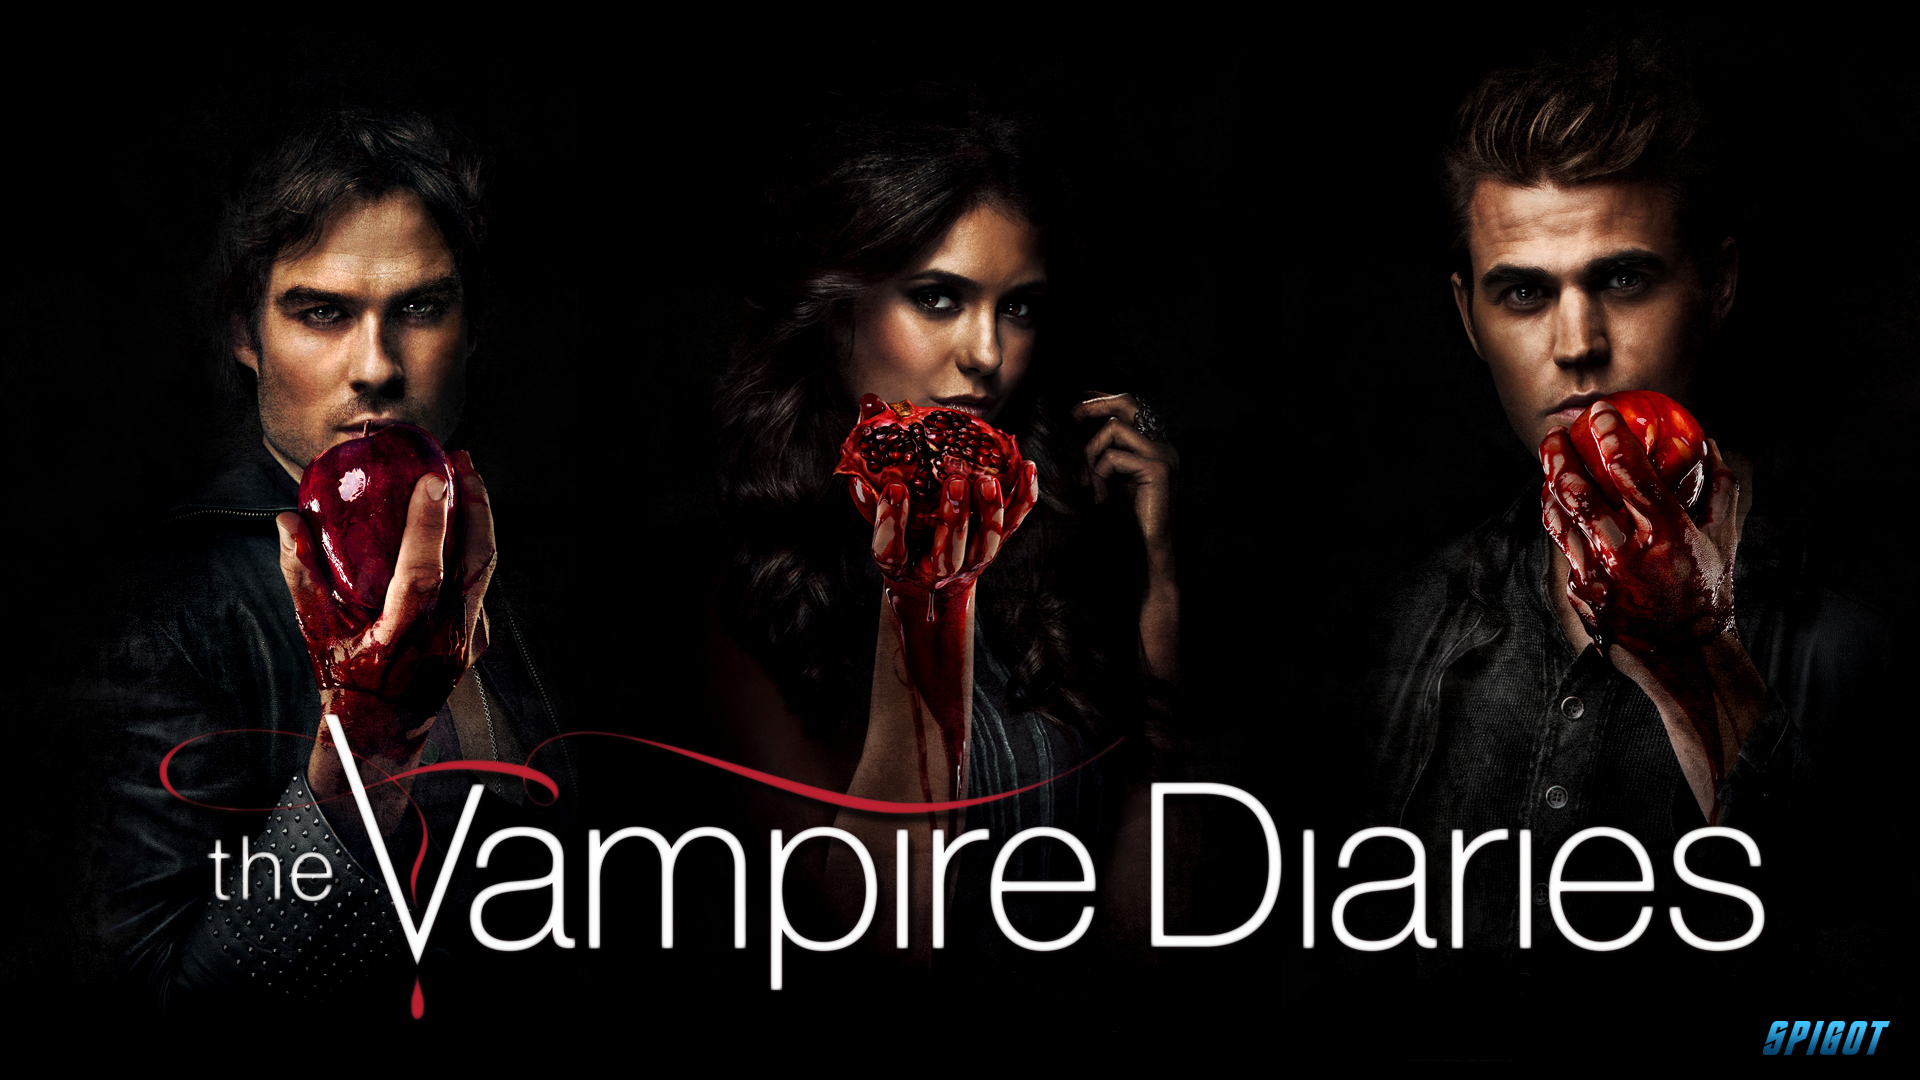 Wallpaper The Vampire Diaries: The Vampire Diaries Elena Gilbert Wallpaper